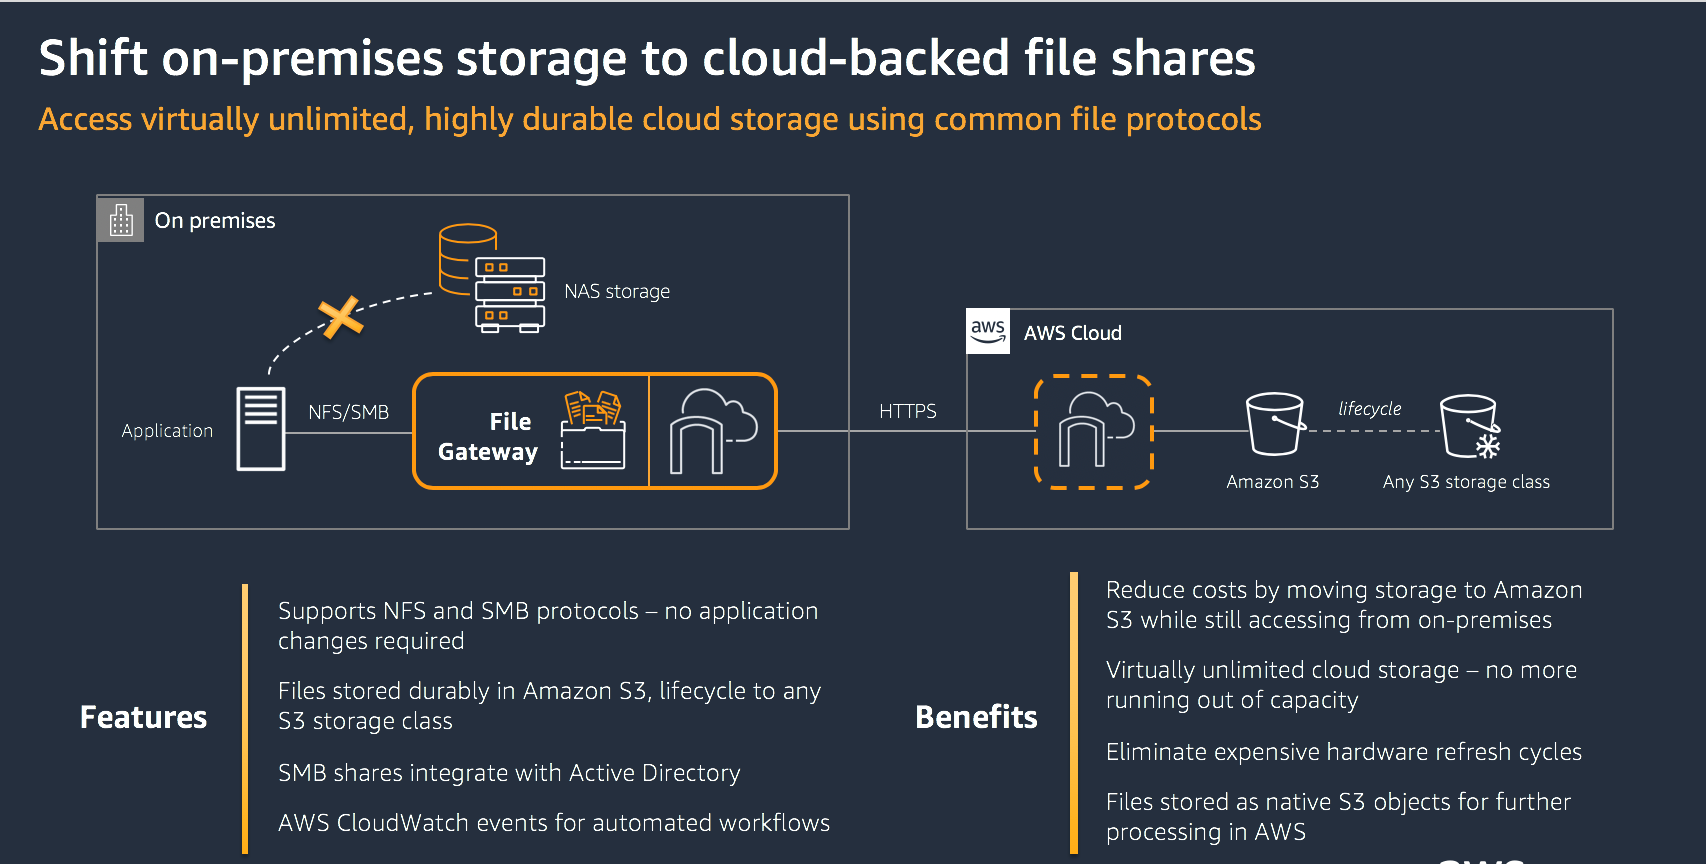 Use case 2- Shift on-premises storage to cloud-backed file shares